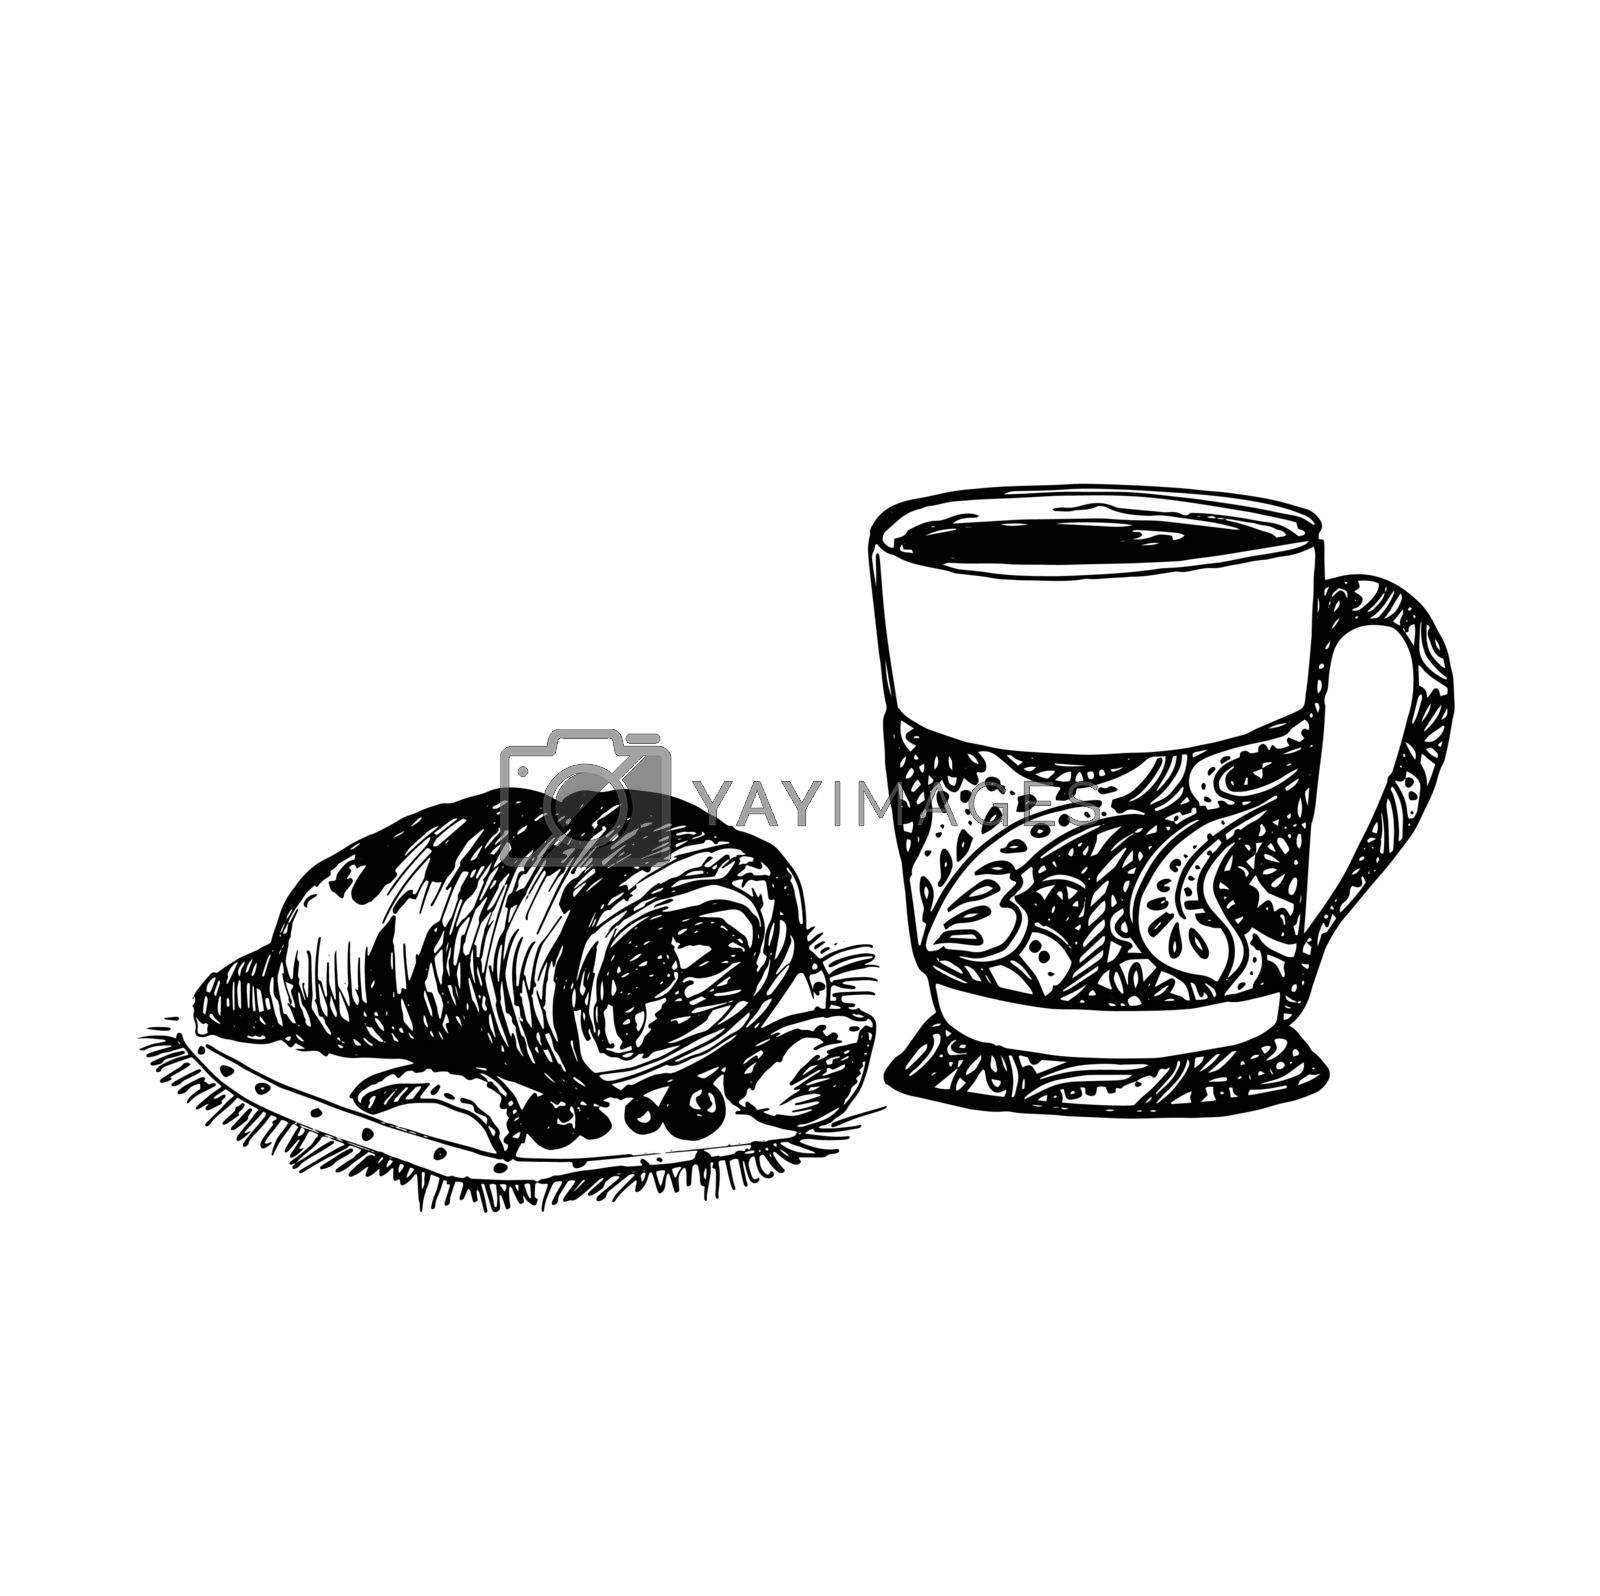 Hand Drawn Sketch of Tea Cup and Delicious Croissant. Vintage Sketch. Great for Banner, Label, Poster